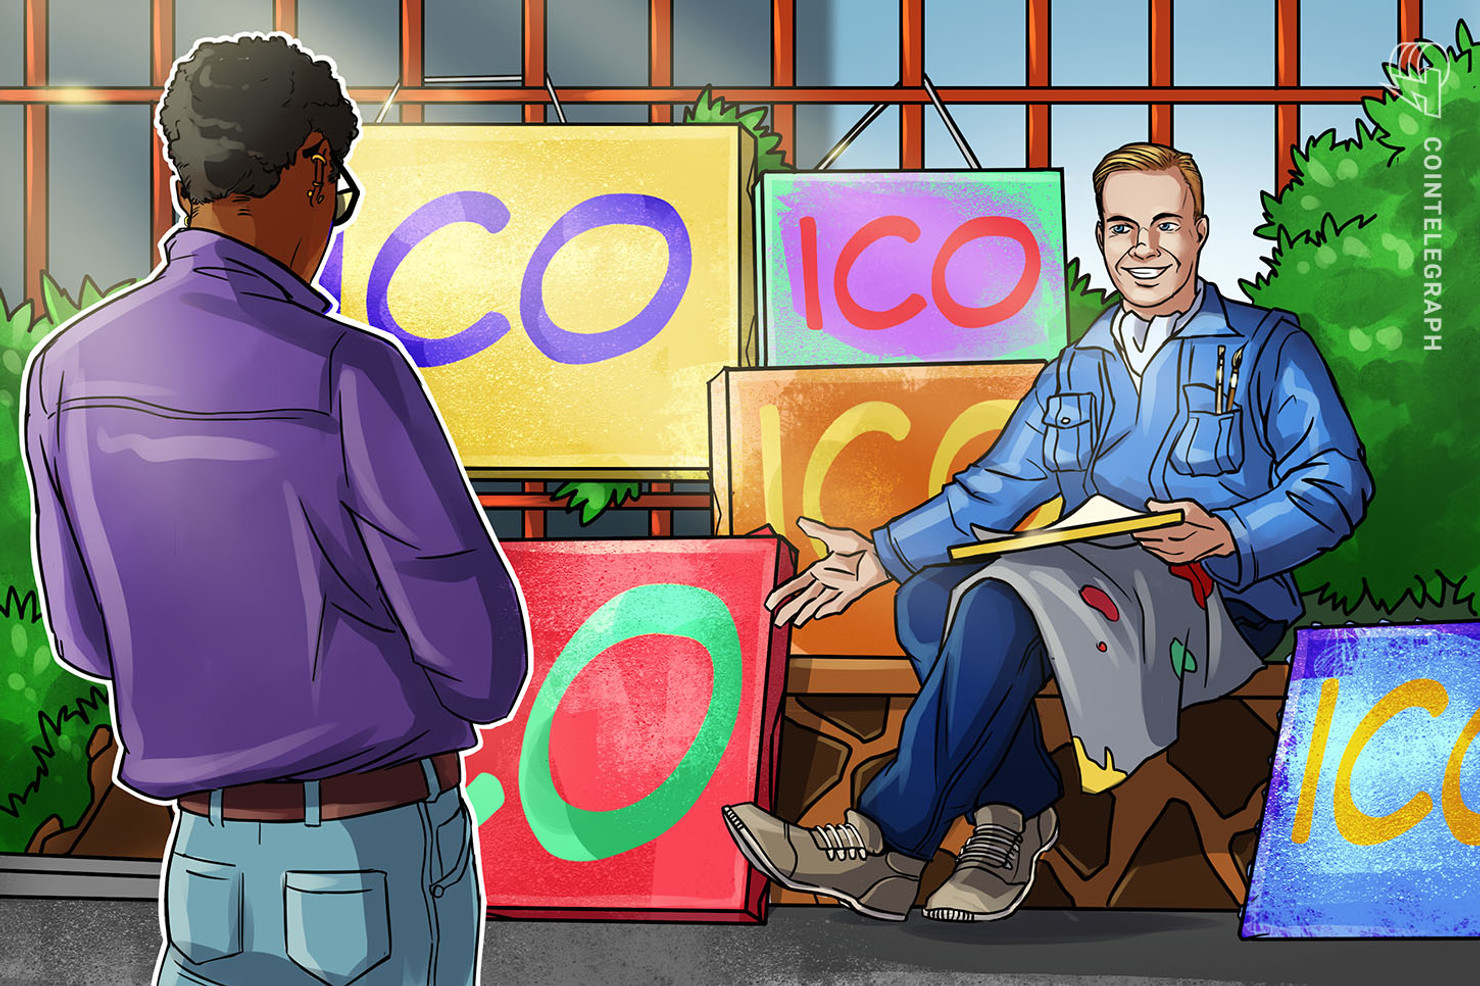 Report: Fewer ICOs Raised Funds in Q1 2019 Than in Q4 2018